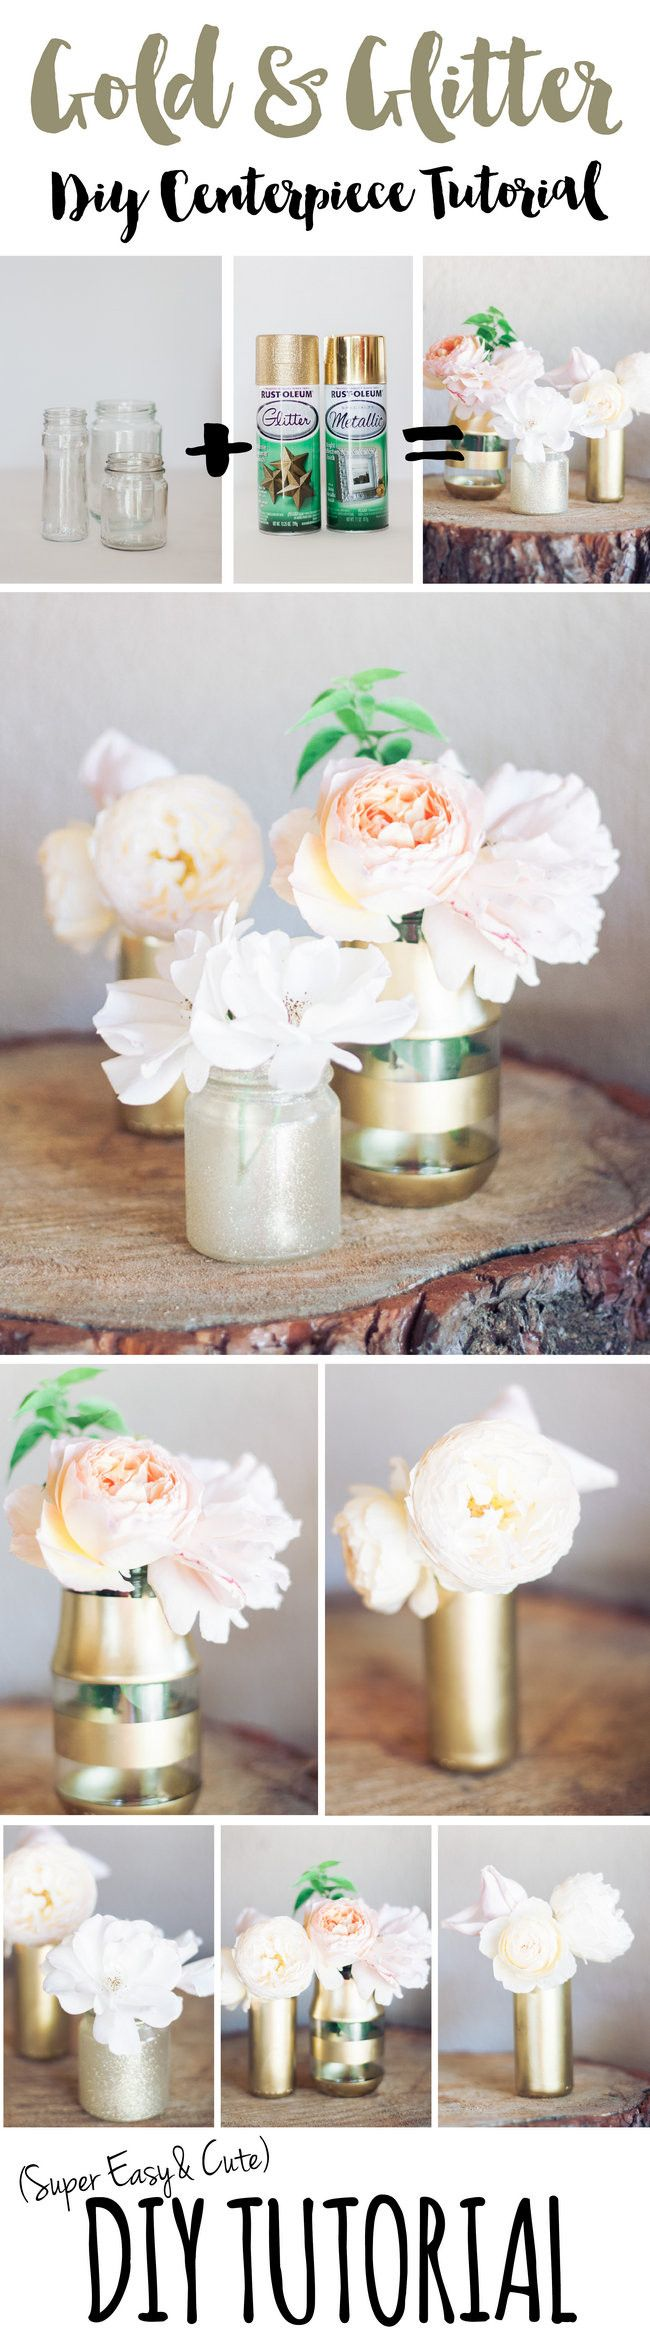 Diy decorations for wedding  DIY Gold and Glitter Vases Tutorial  Wedding centerpieces Gold